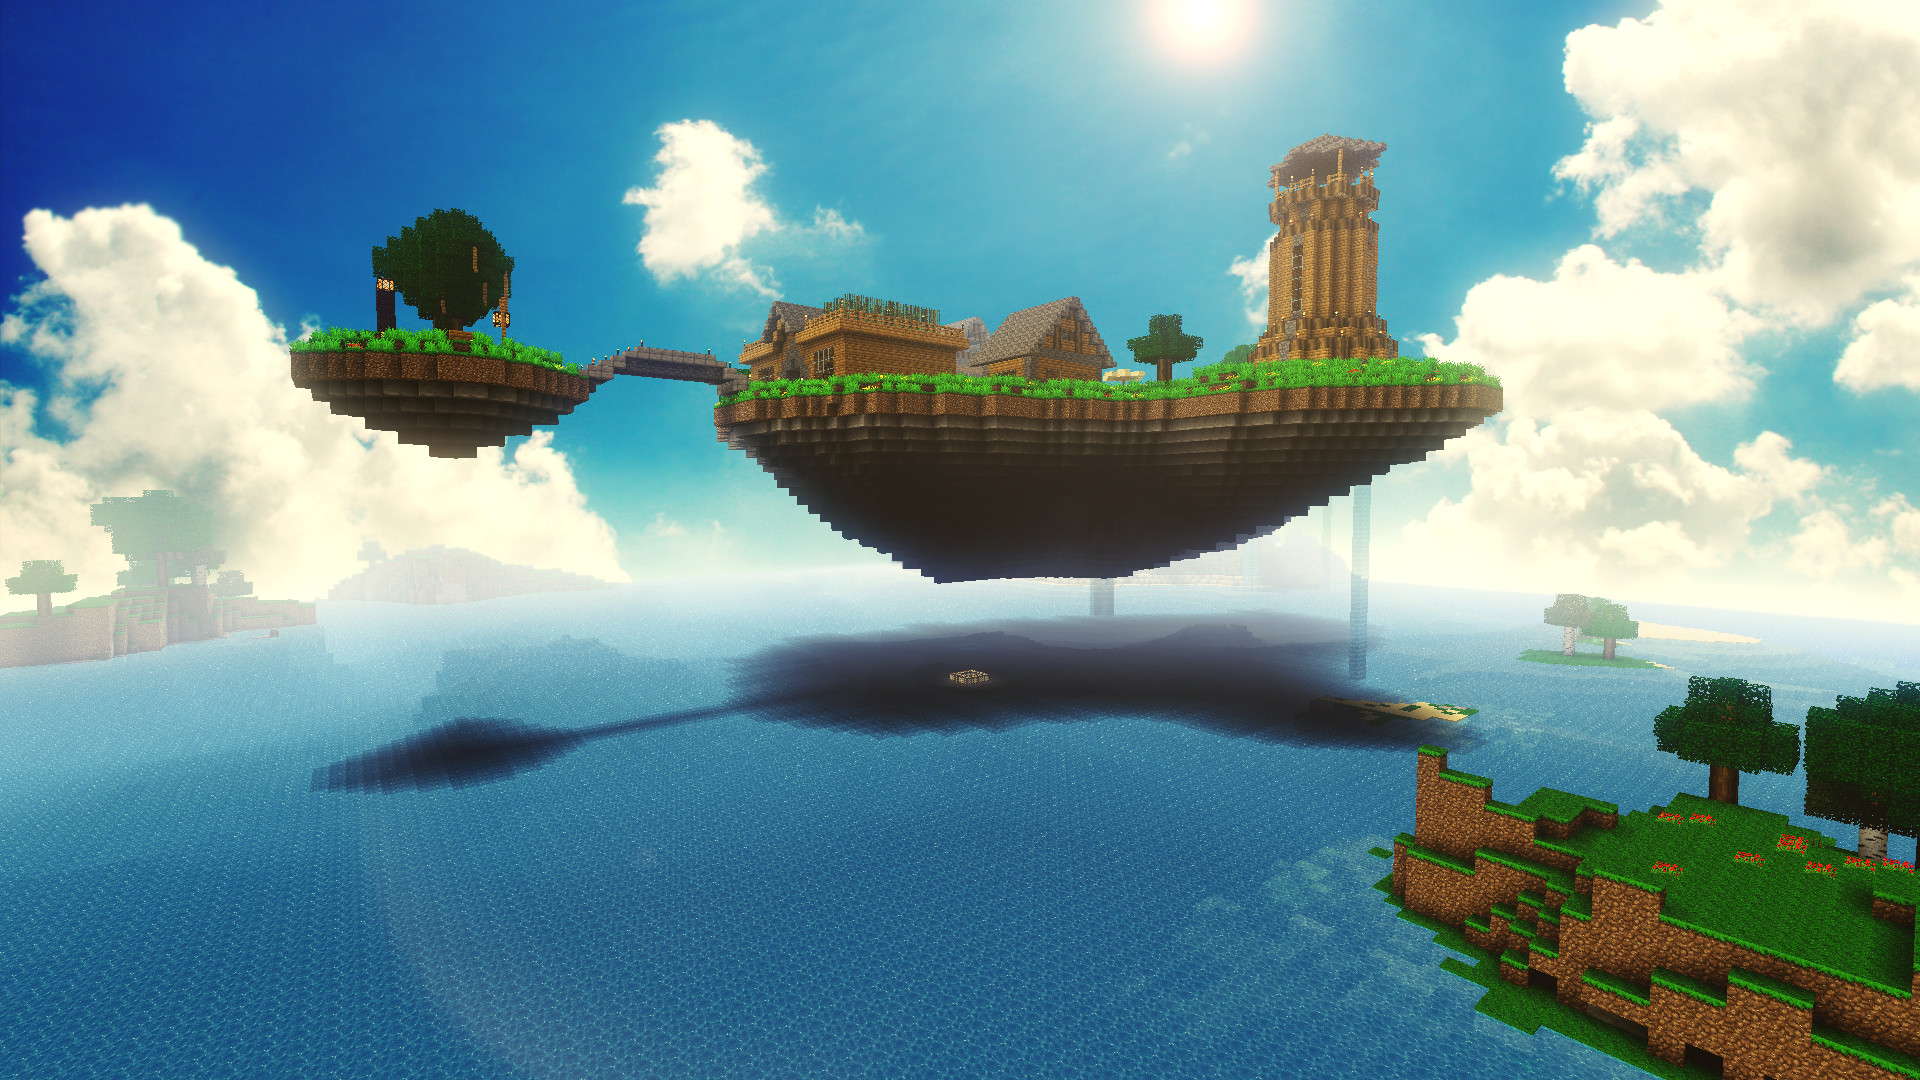 406 Minecraft HD Wallpapers | Backgrounds – Wallpaper Abyss